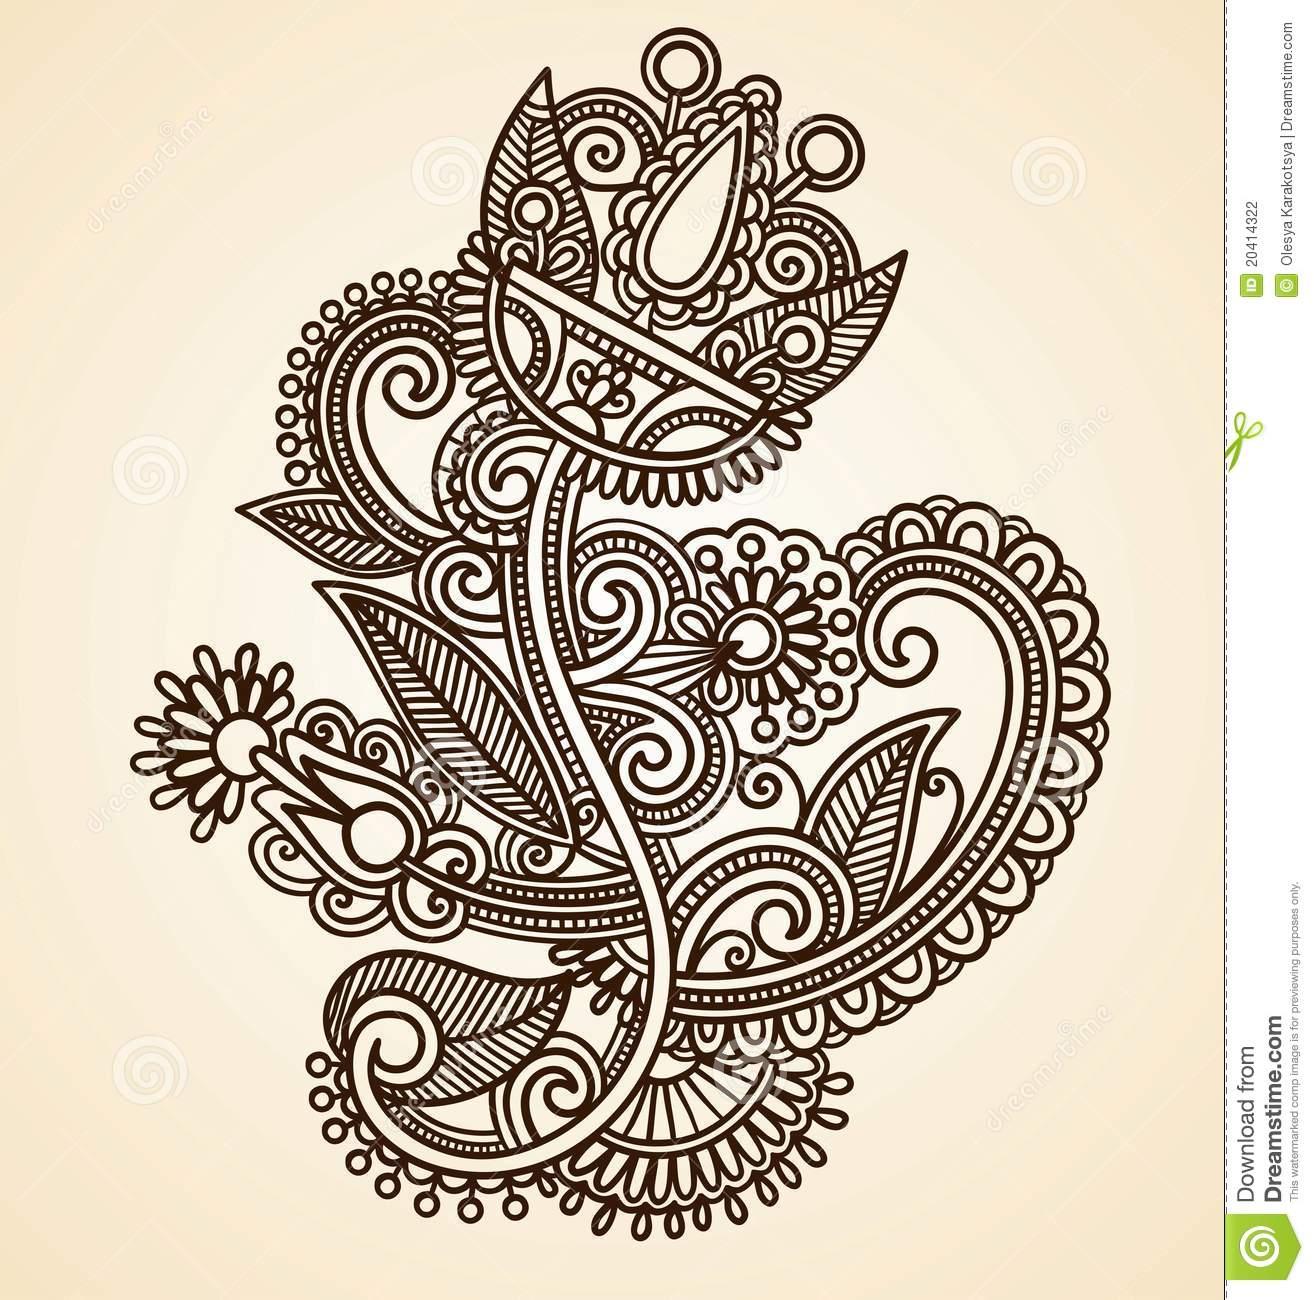 Henna Mendie Flowers Doodle Vector Illustration Design Element